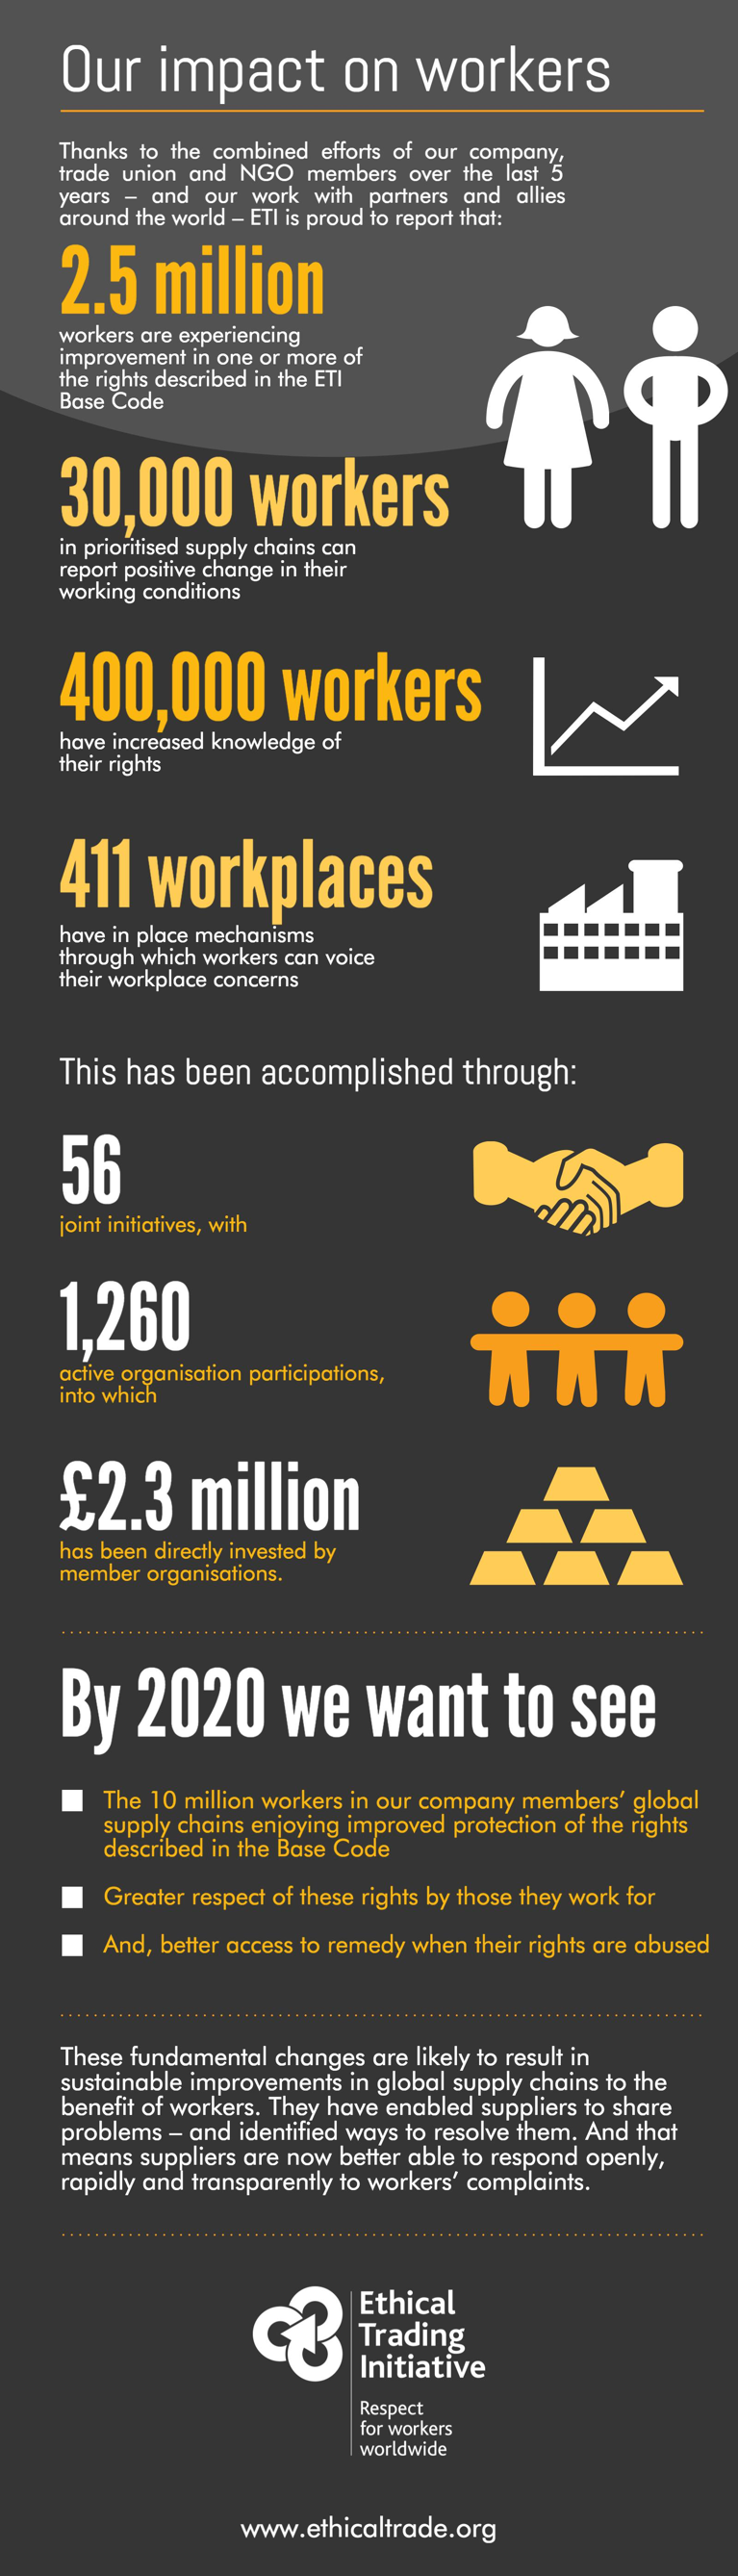 Infographic about our impact on workers